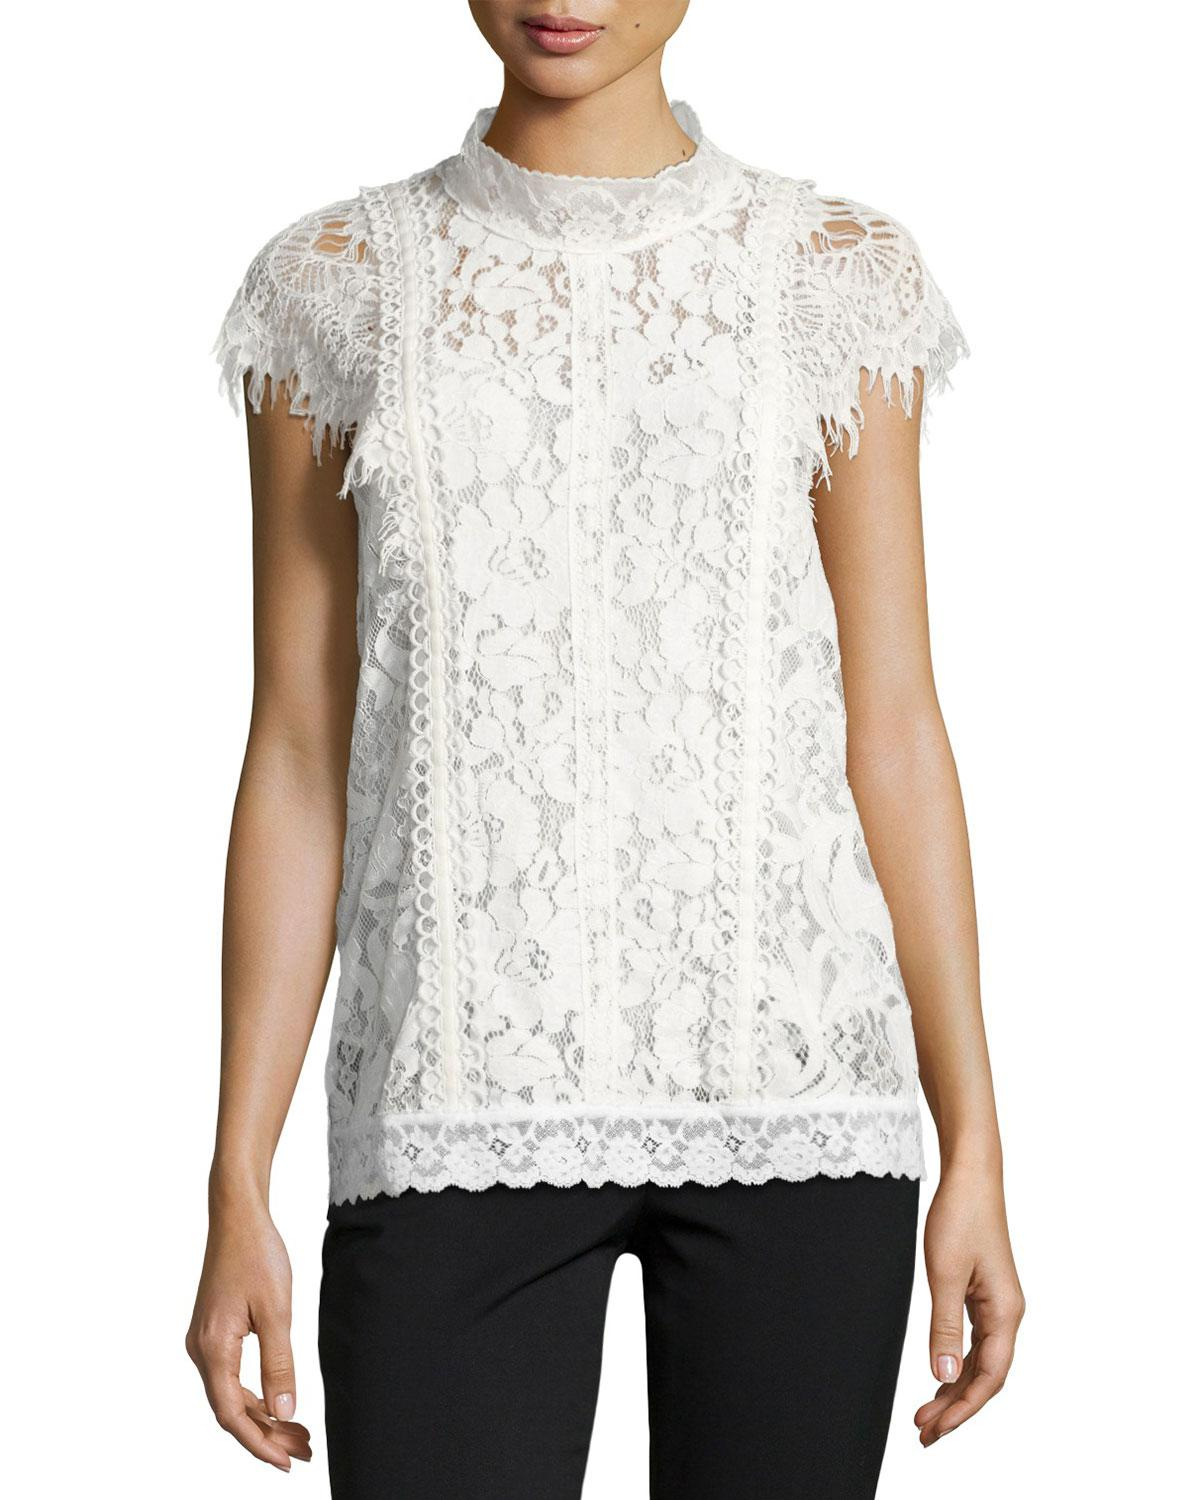 Lyst  Burberry Lace Capsleeve Top in White